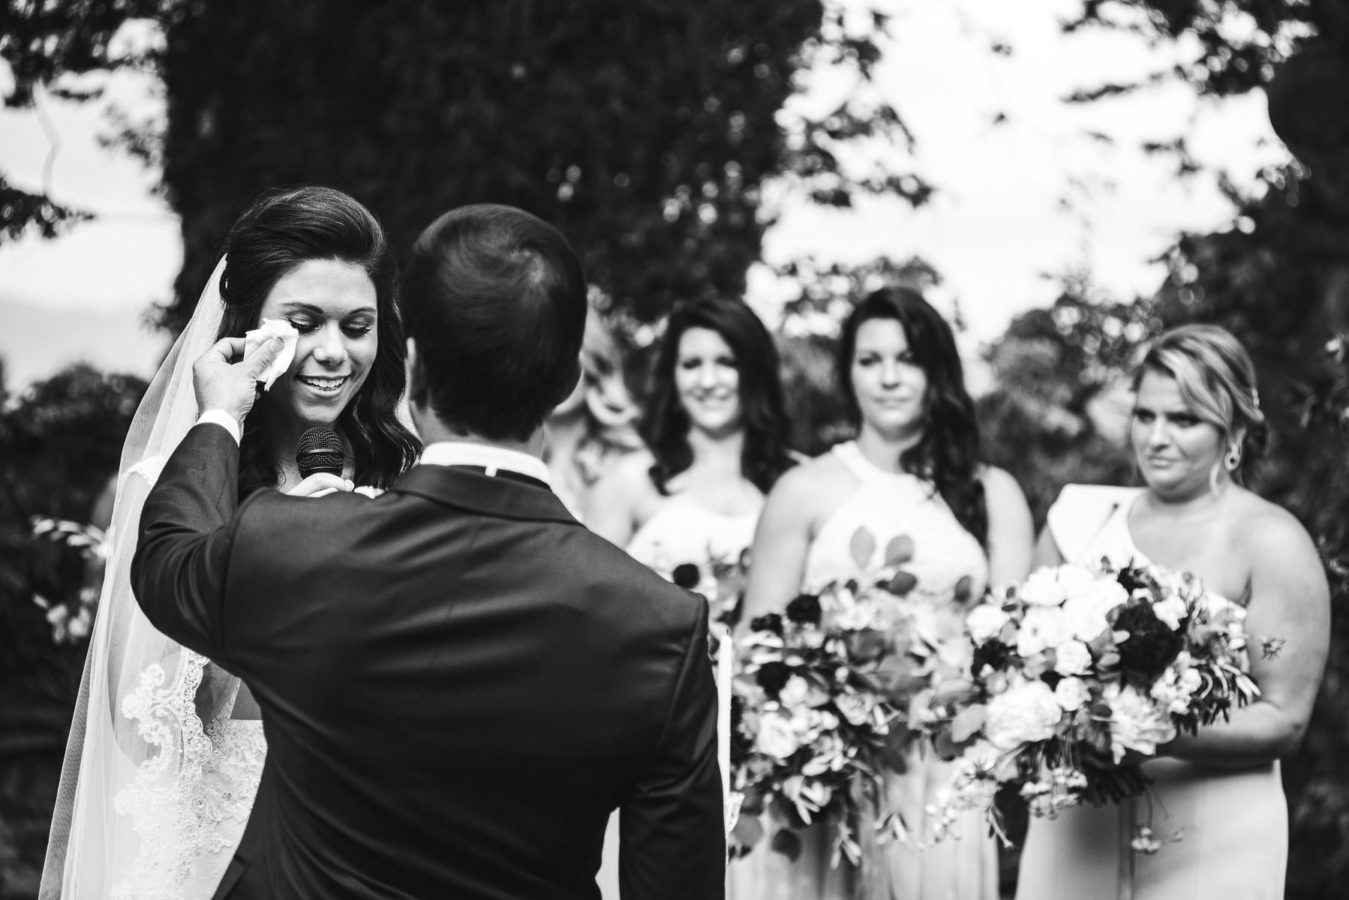 Emotional and unforgettable moment during bride and groom vows exchange